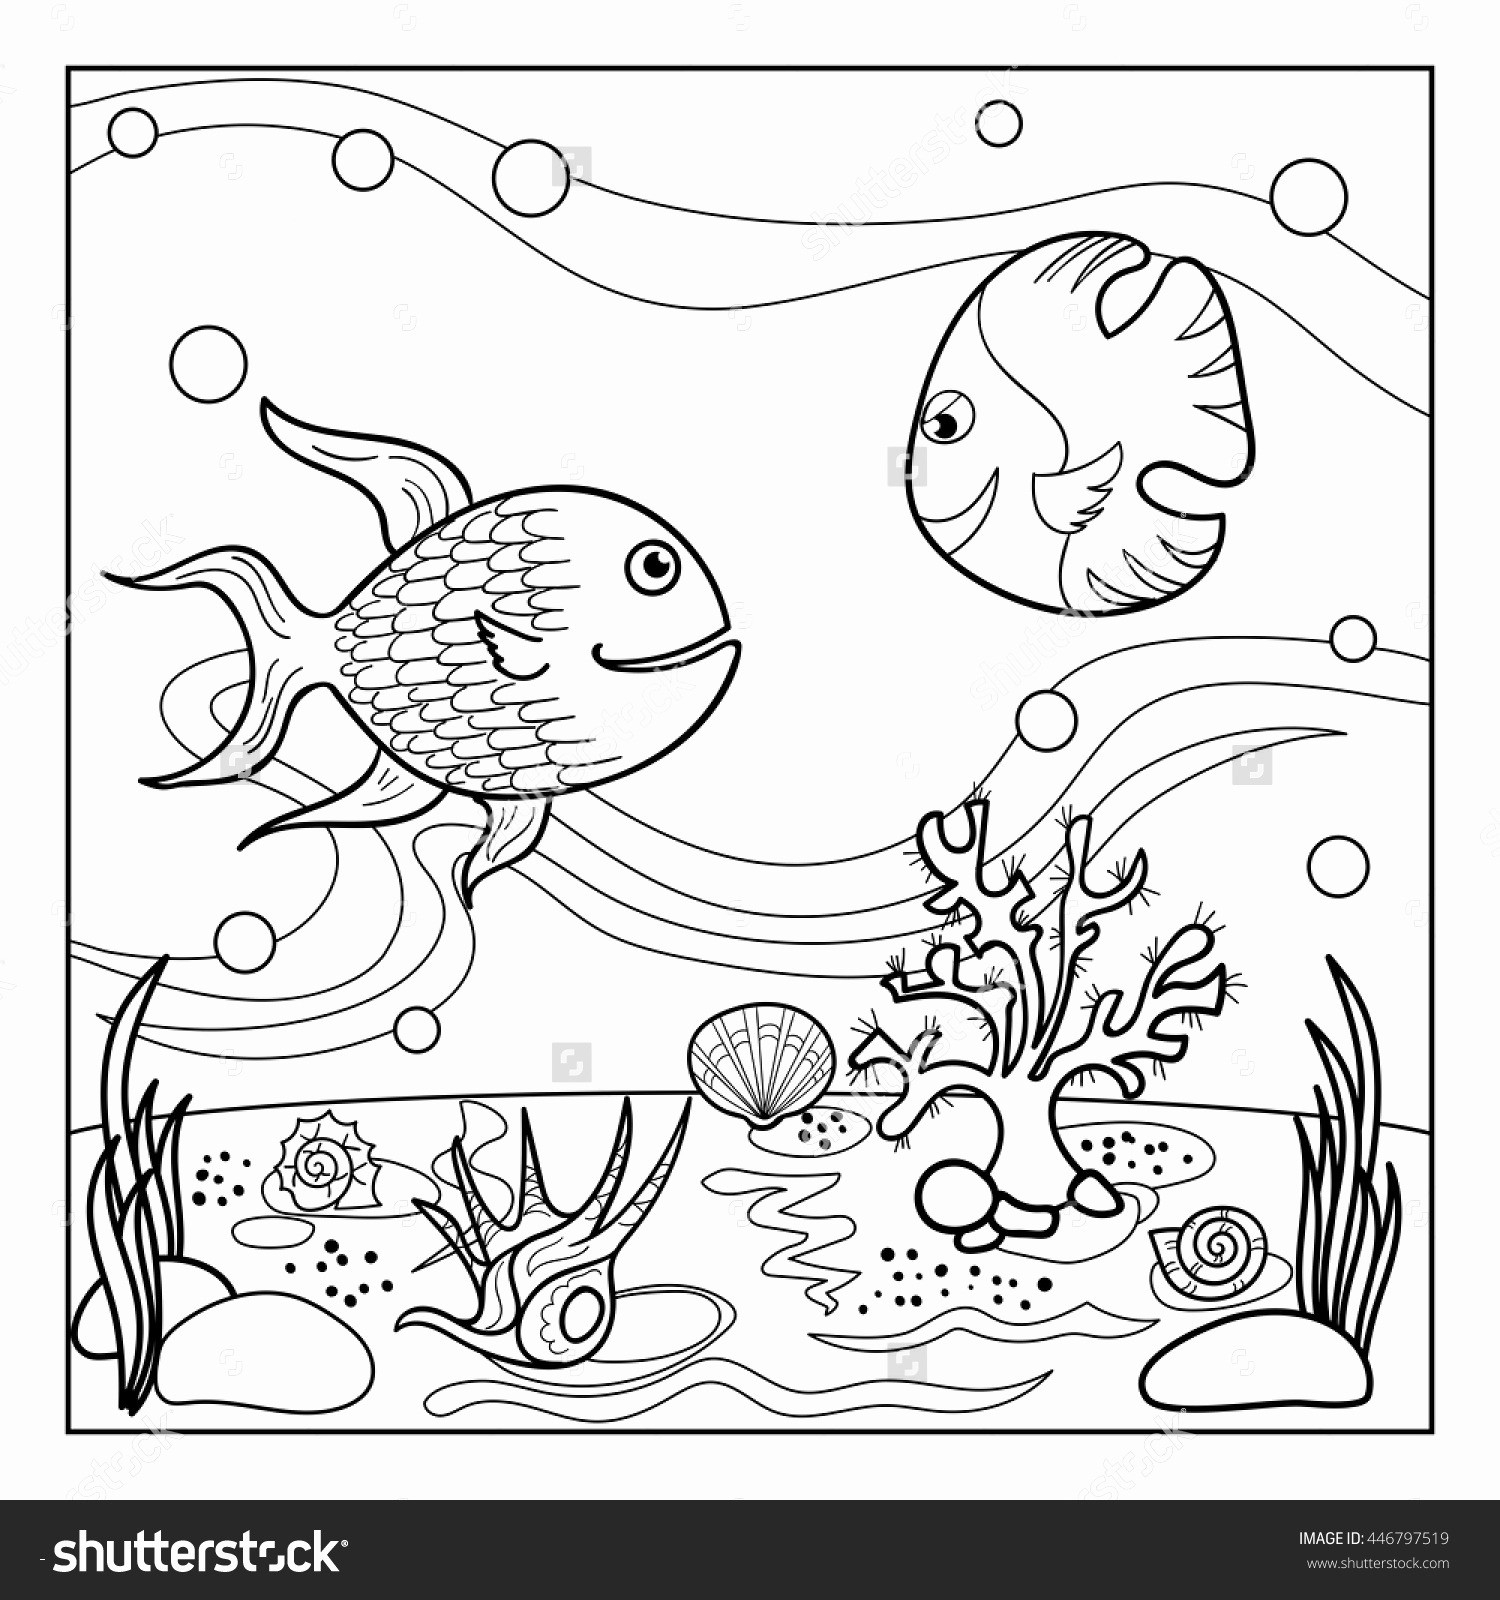 Feathers Coloring Pages  Printable 9f - To print for your project